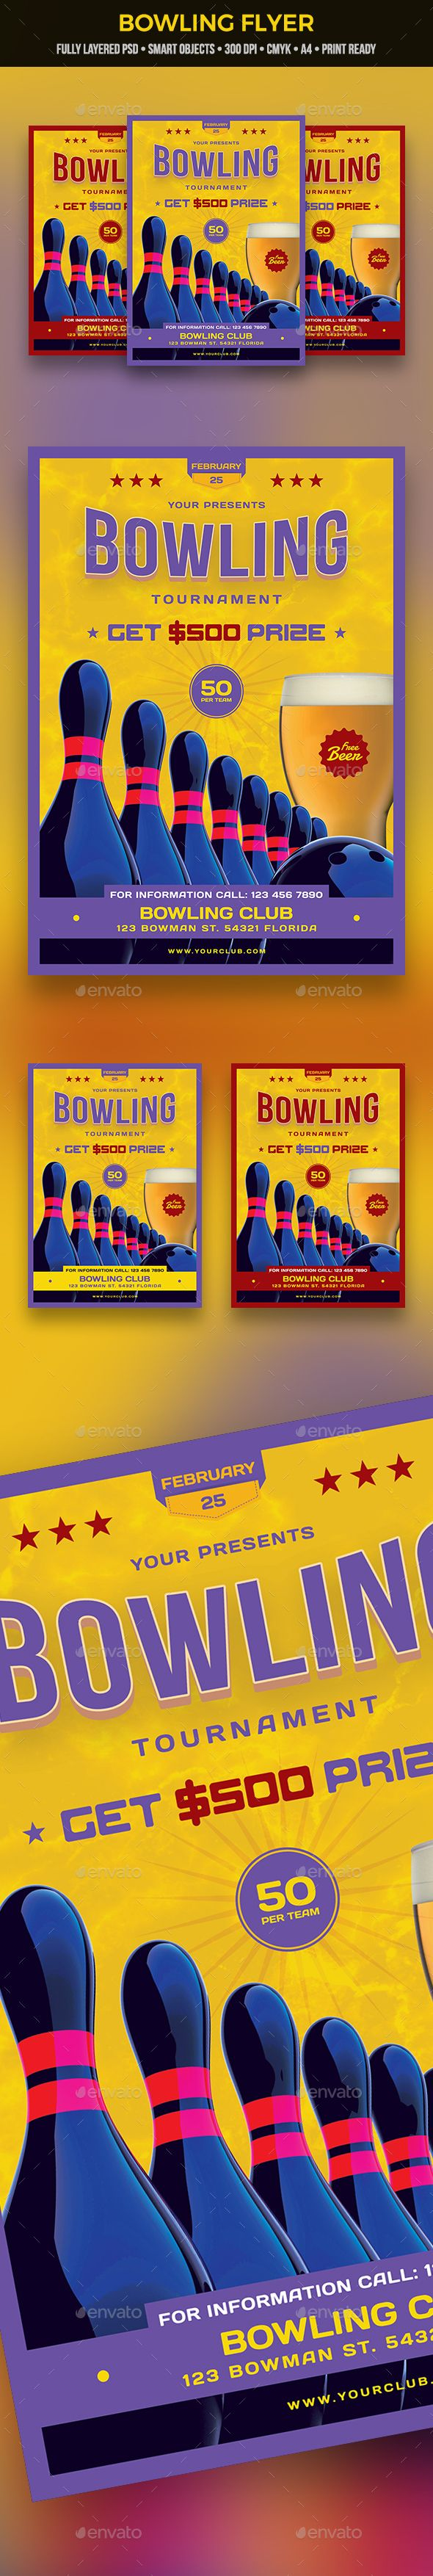 Bowling Flyer — Photoshop PSD #group #bowling championship • Download ➝ https://graphicriver.net/item/bowling-flyer/21164394?ref=pxcr